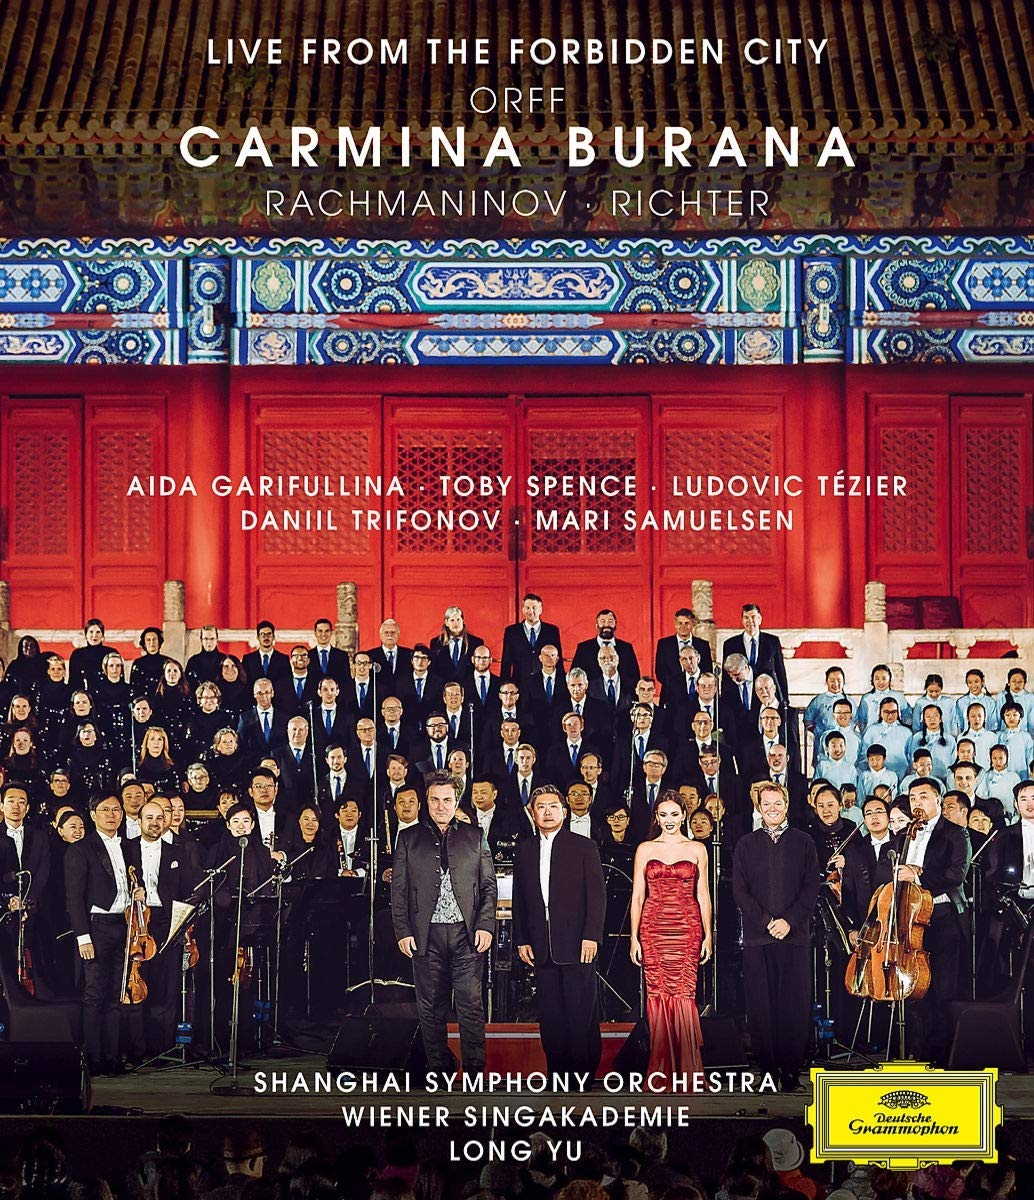 Blu-ray : VARIOUS - Orff: Carmina (live From The Forbidden City) (Blu-ray)